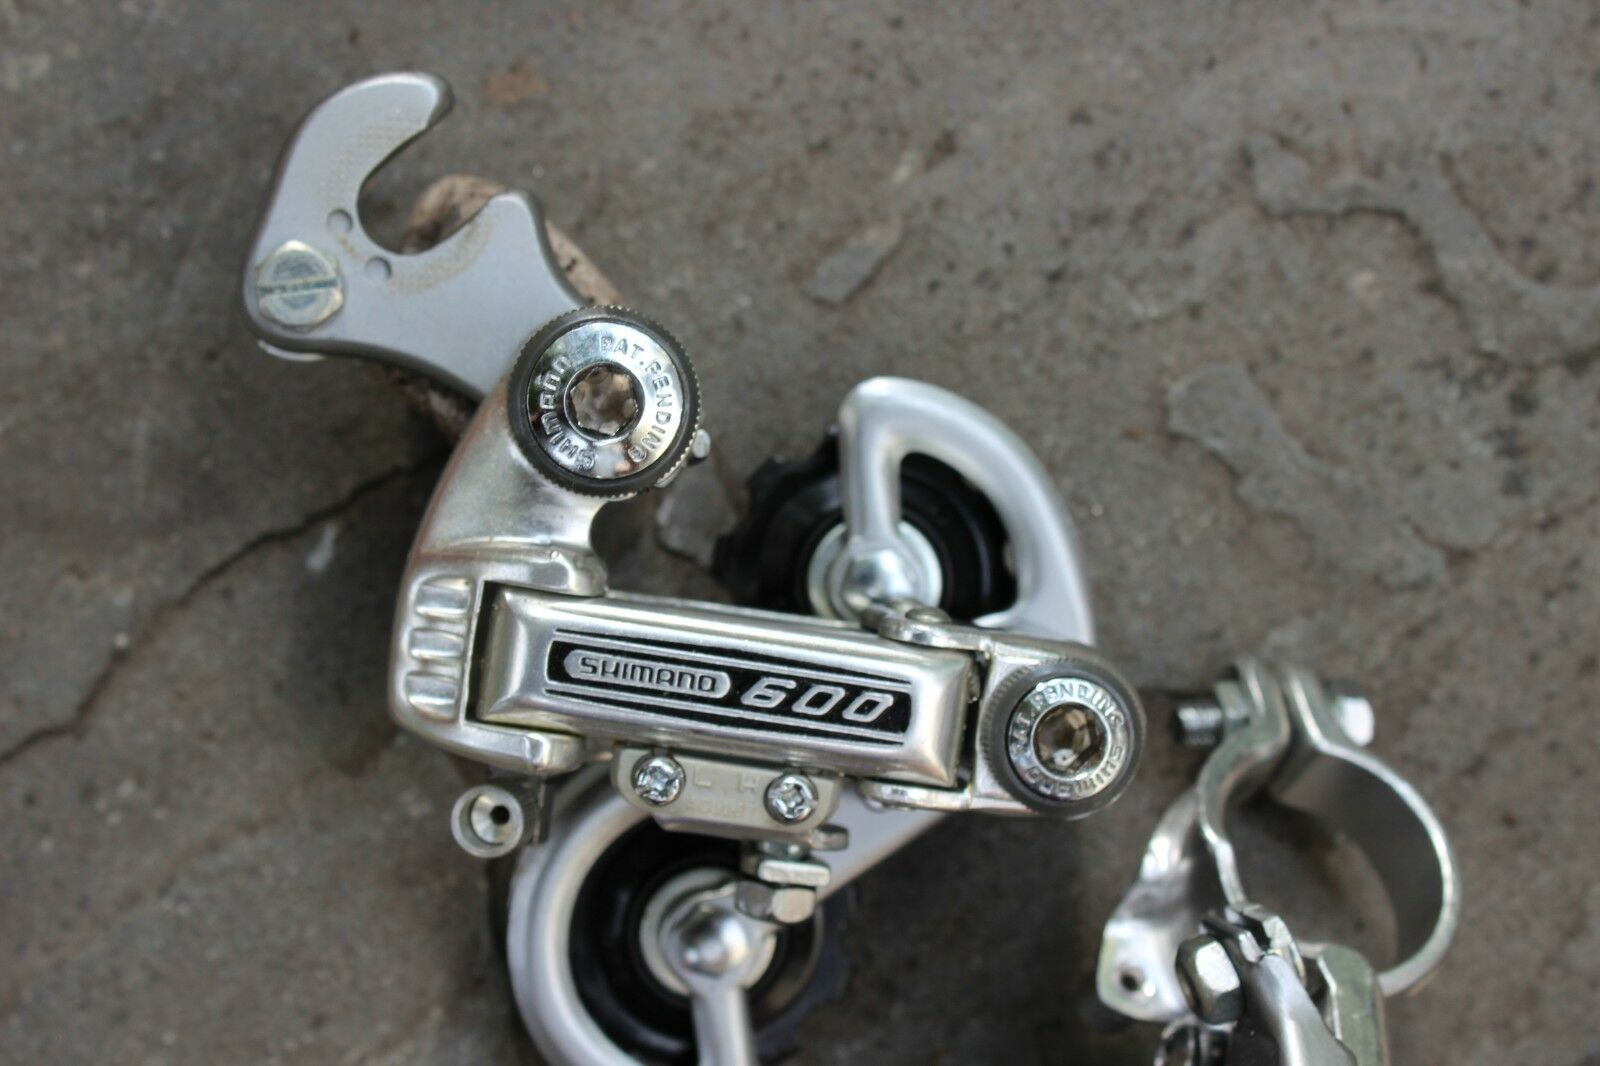 Shimano 600 Front and Rear Derailleur Set . NOS Never Used